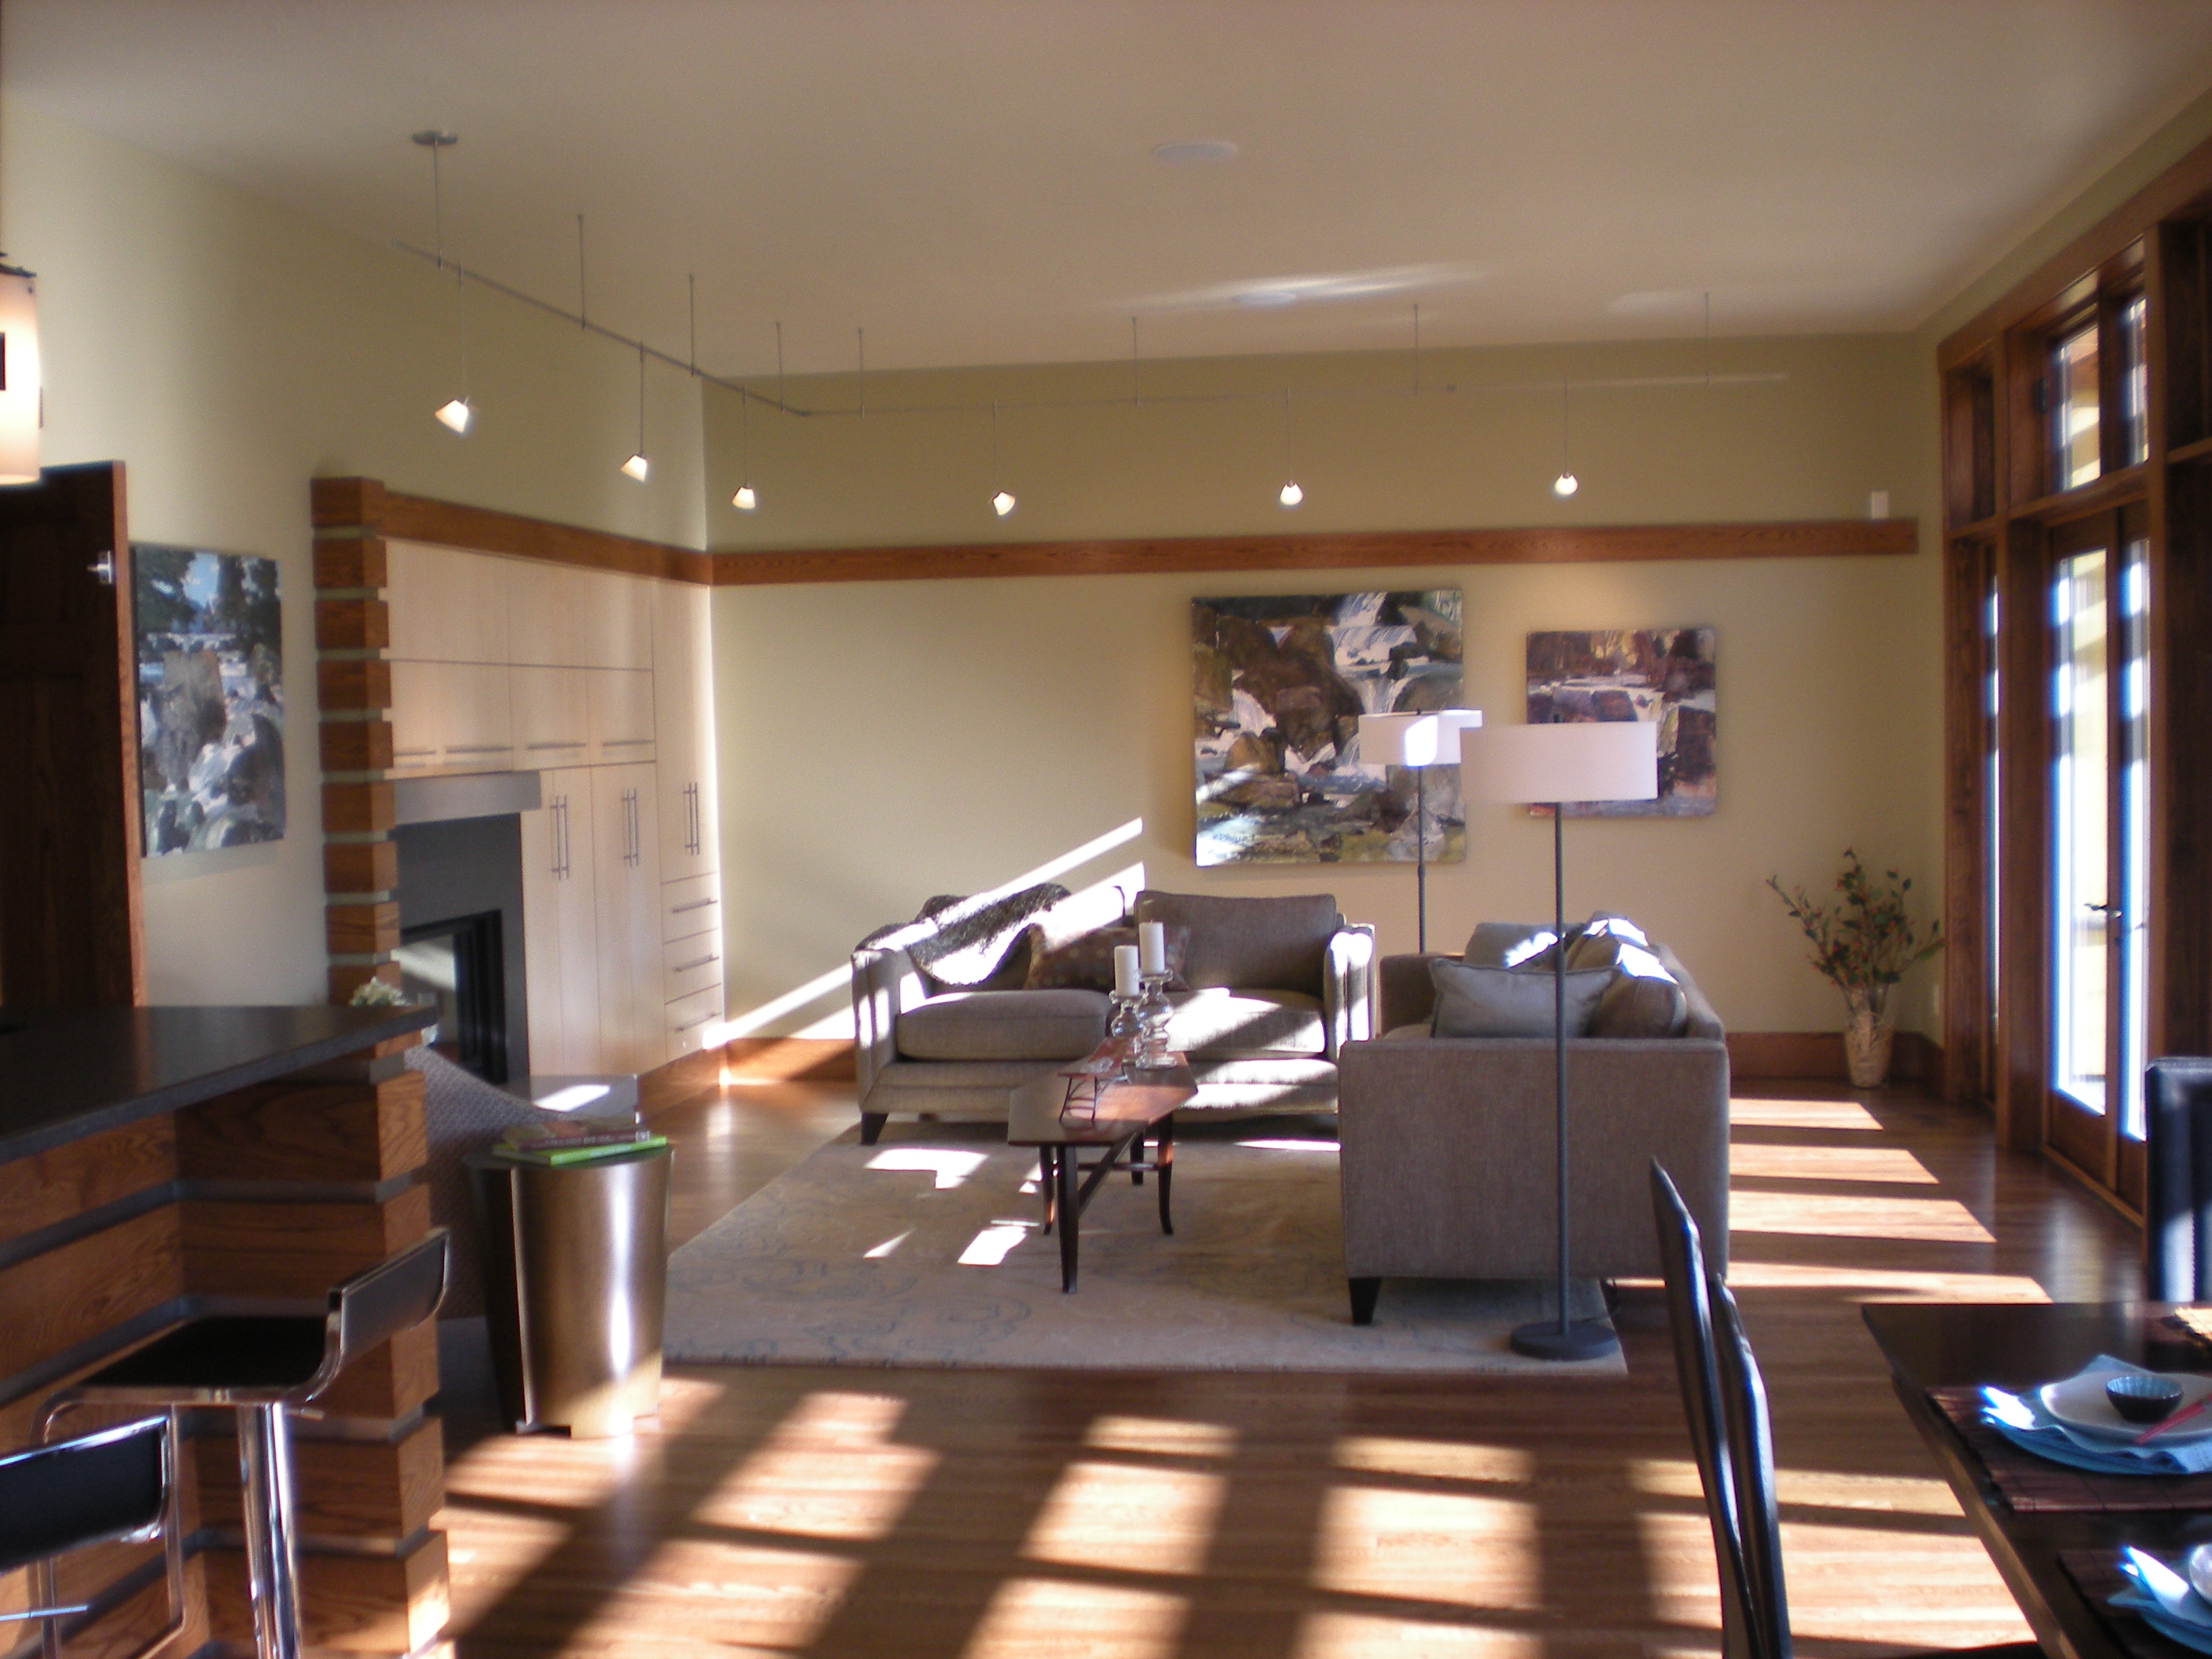 Residential Electrical Design And Electrical Work Montana Missoula: Living  Room Part 84